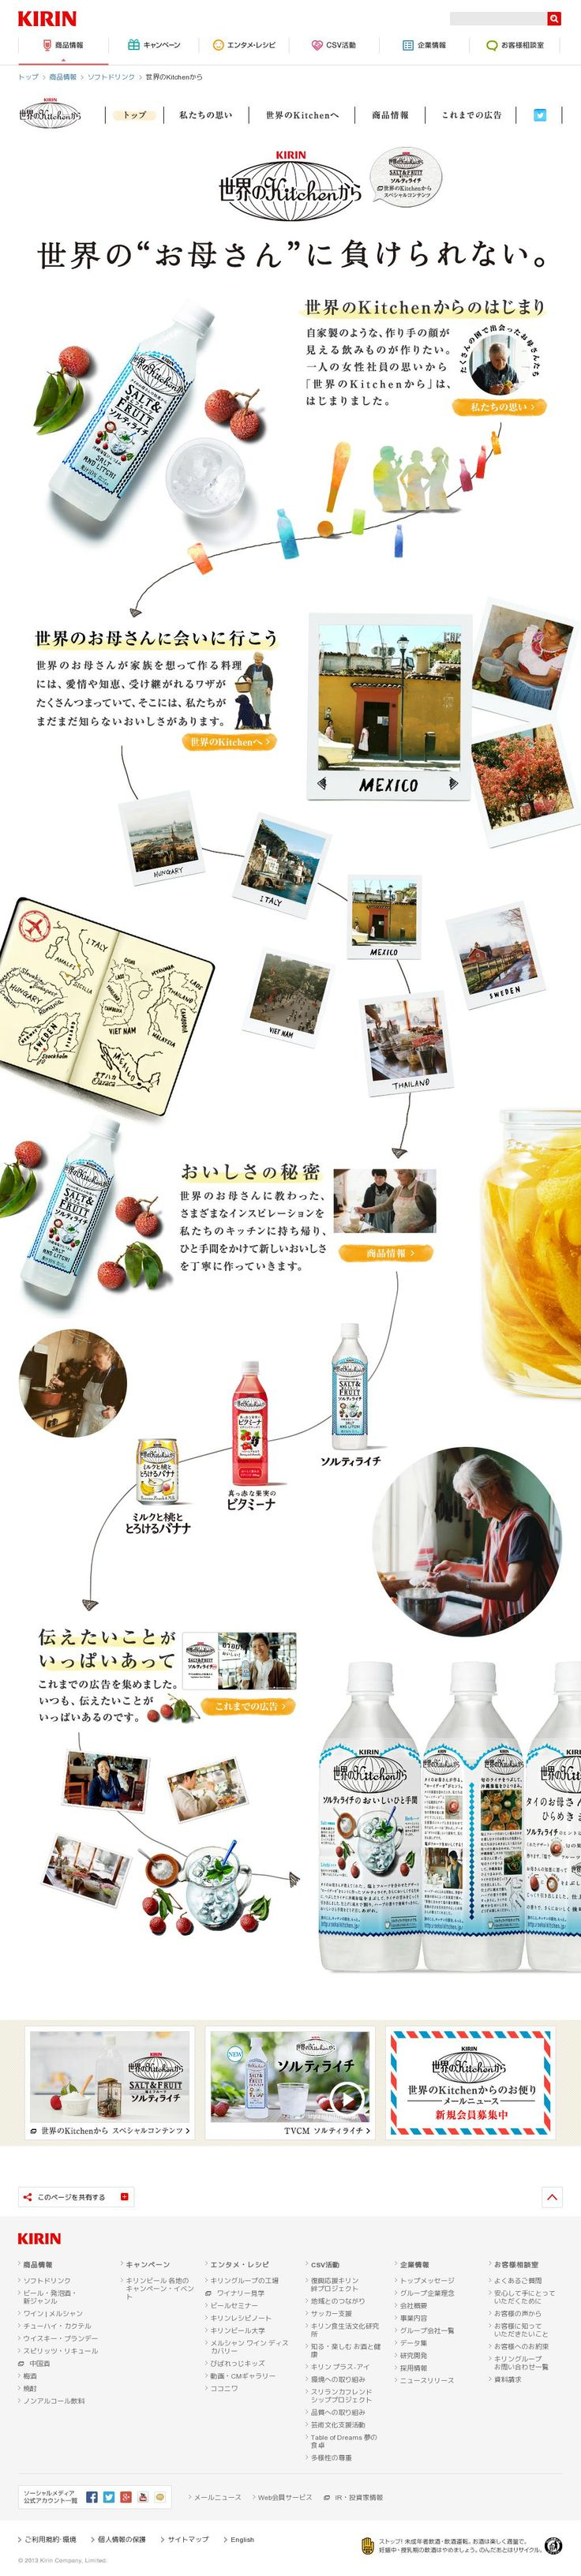 The website 'http://www.kirin.co.jp/products/softdrink/kitchen/pc/' courtesy of…